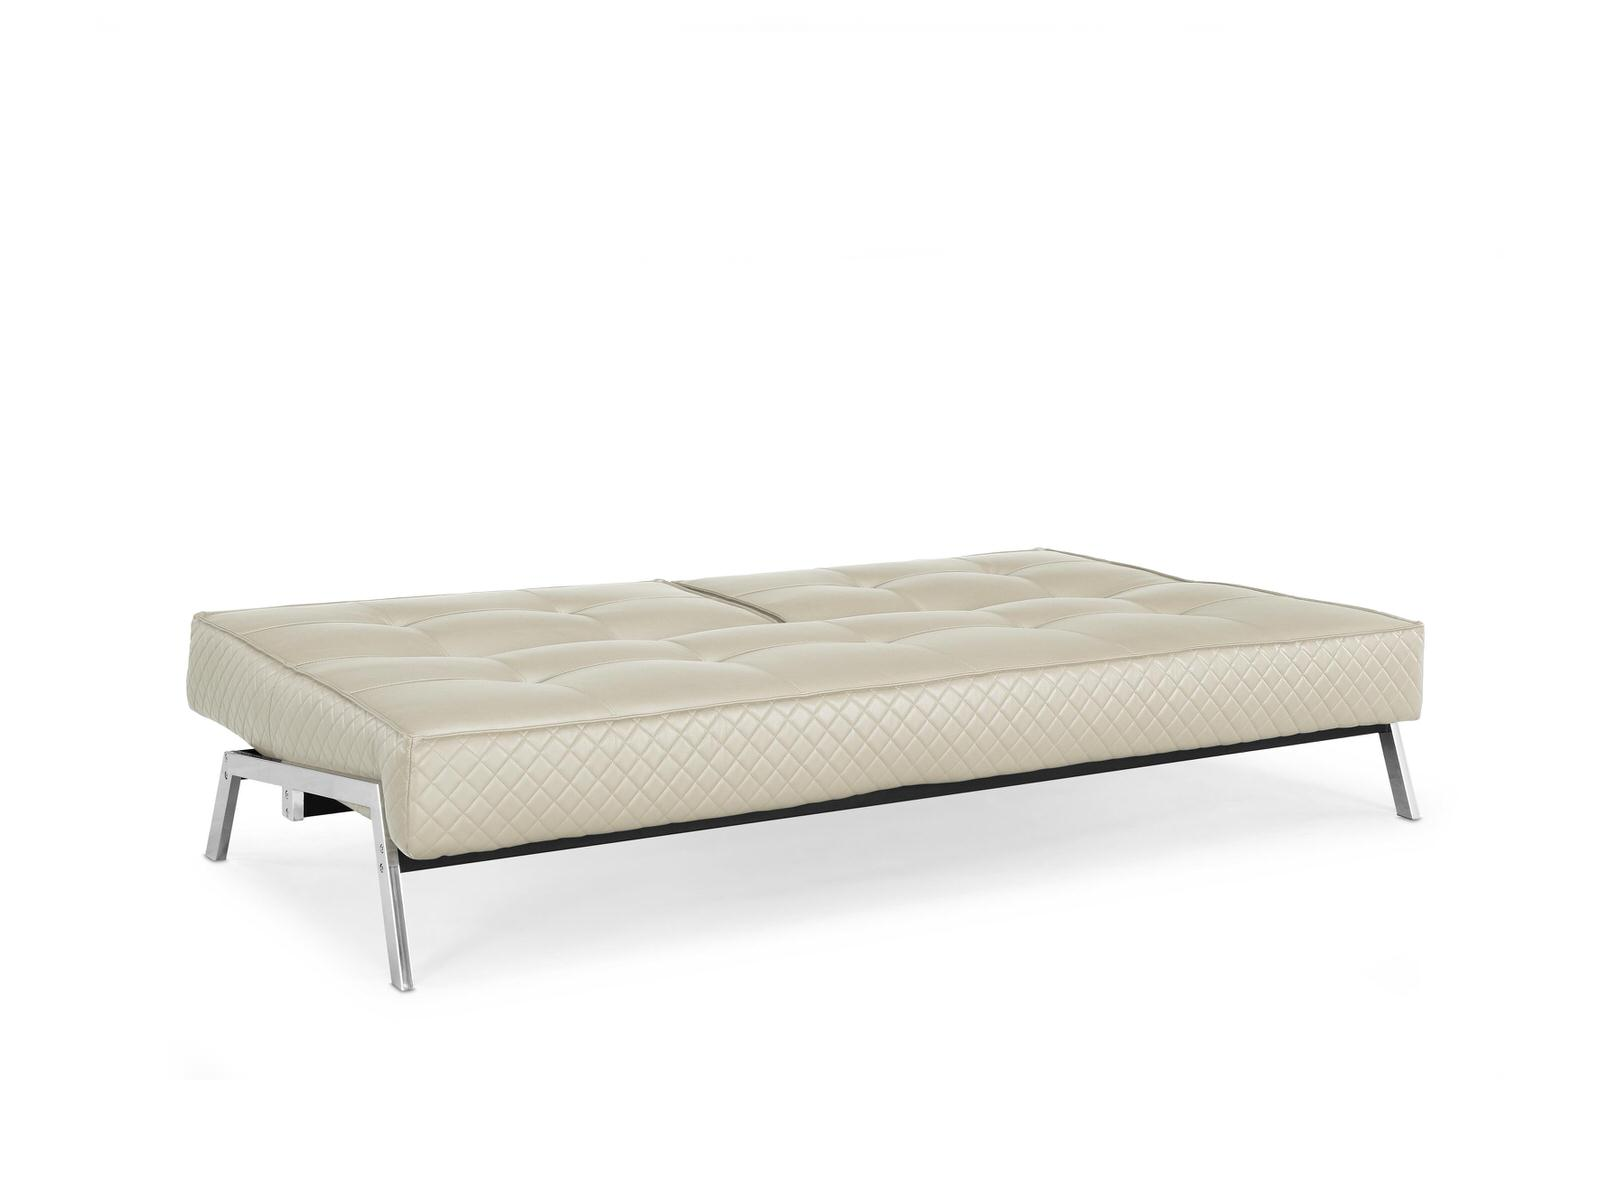 Lifestyle Solutions Serta Sophia Sleeper Sofa Bed